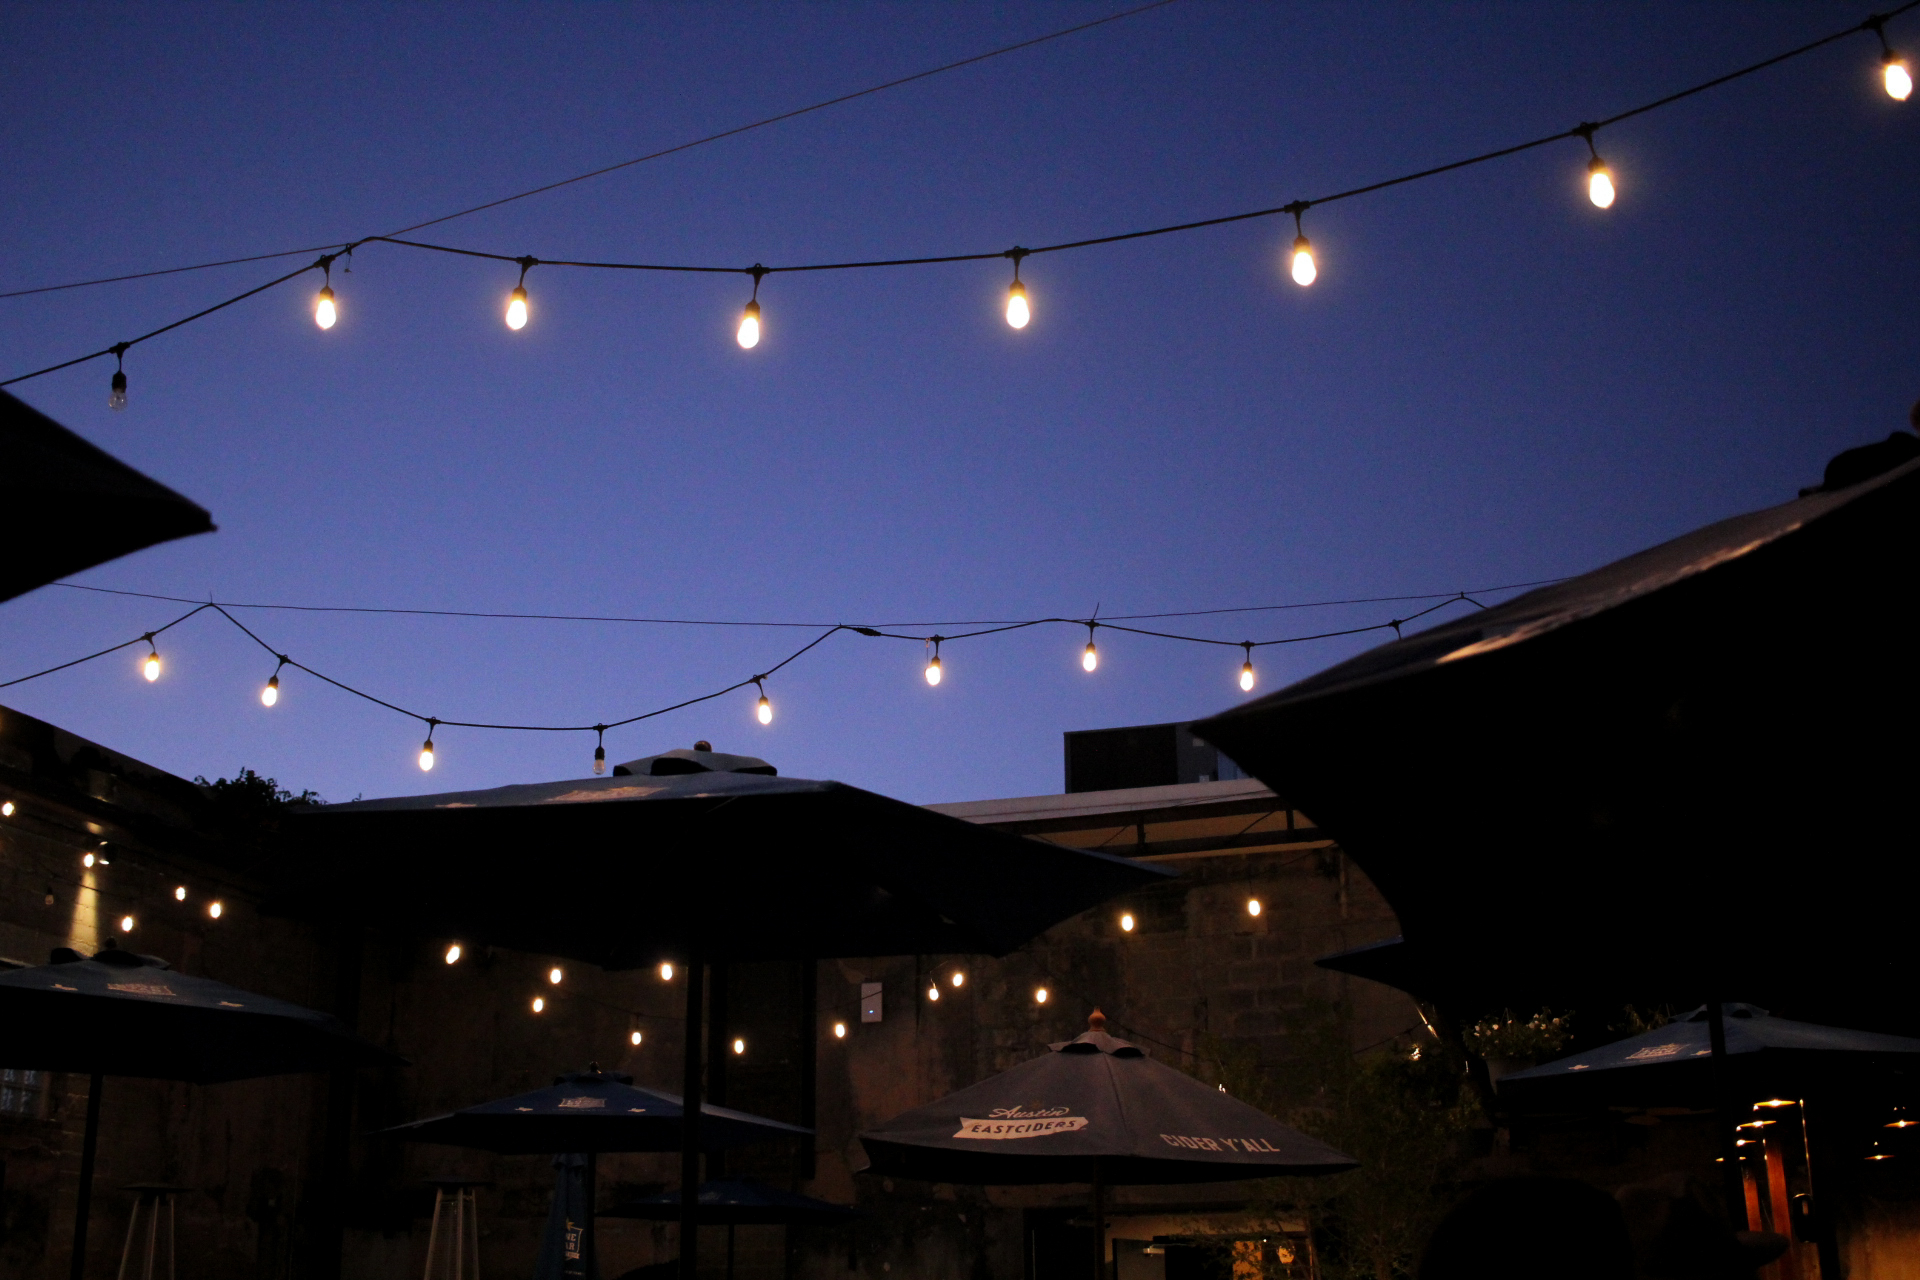 An evening on the patio